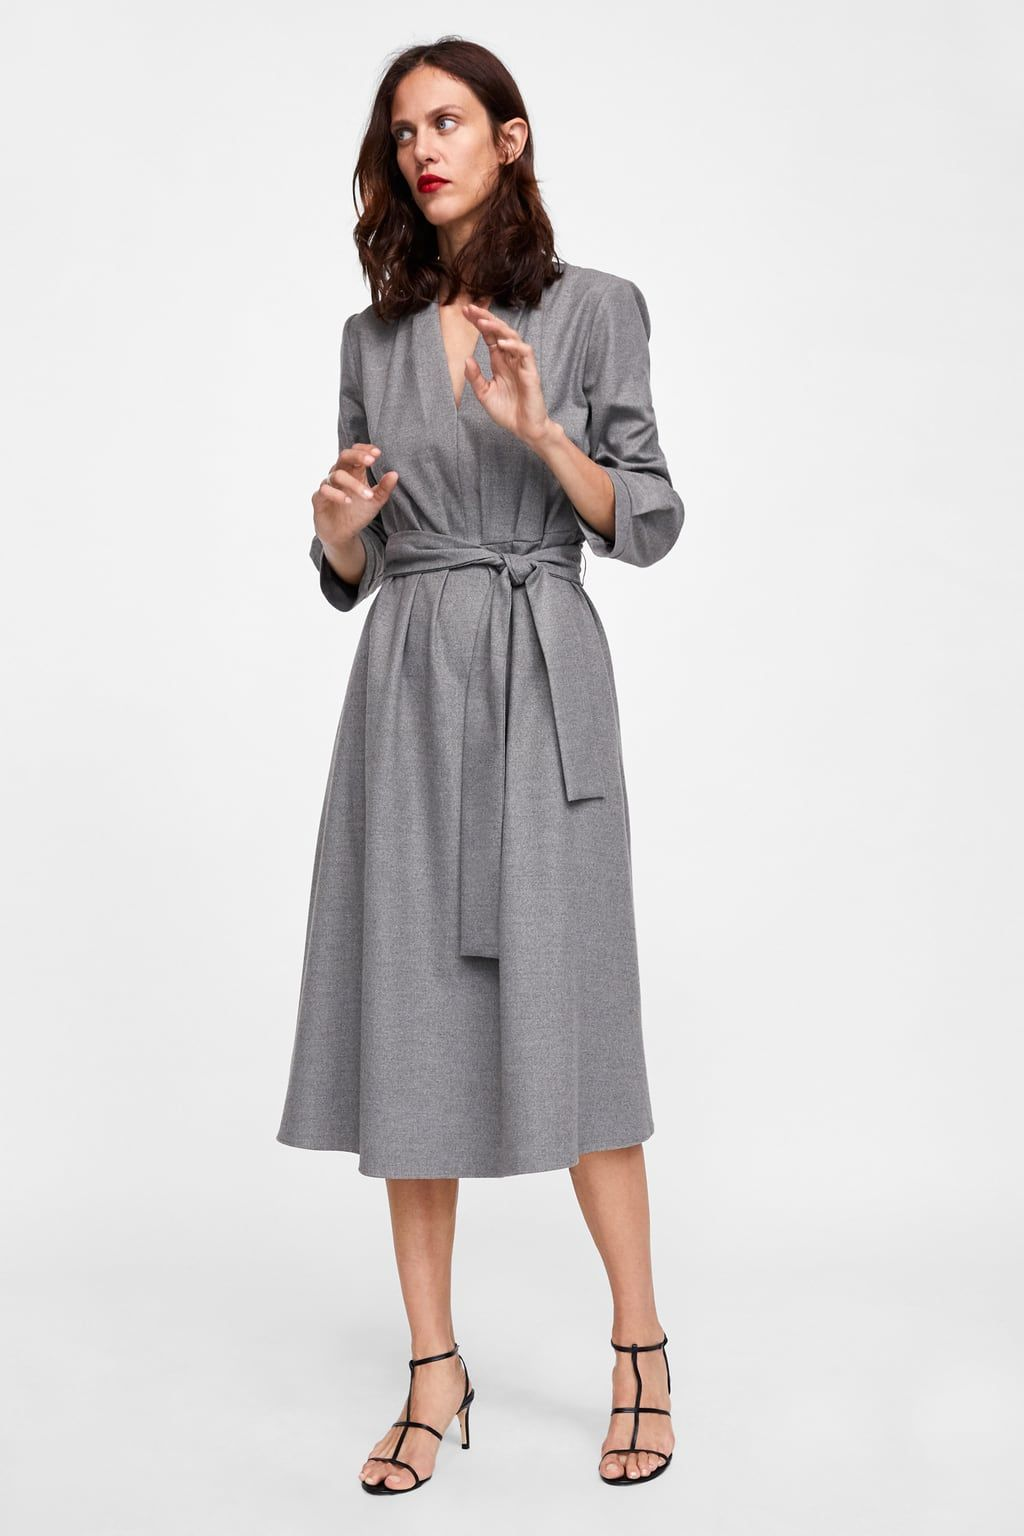 ZARA - WOMAN - PLEATED MIDI DRESS  Midikleider, High street